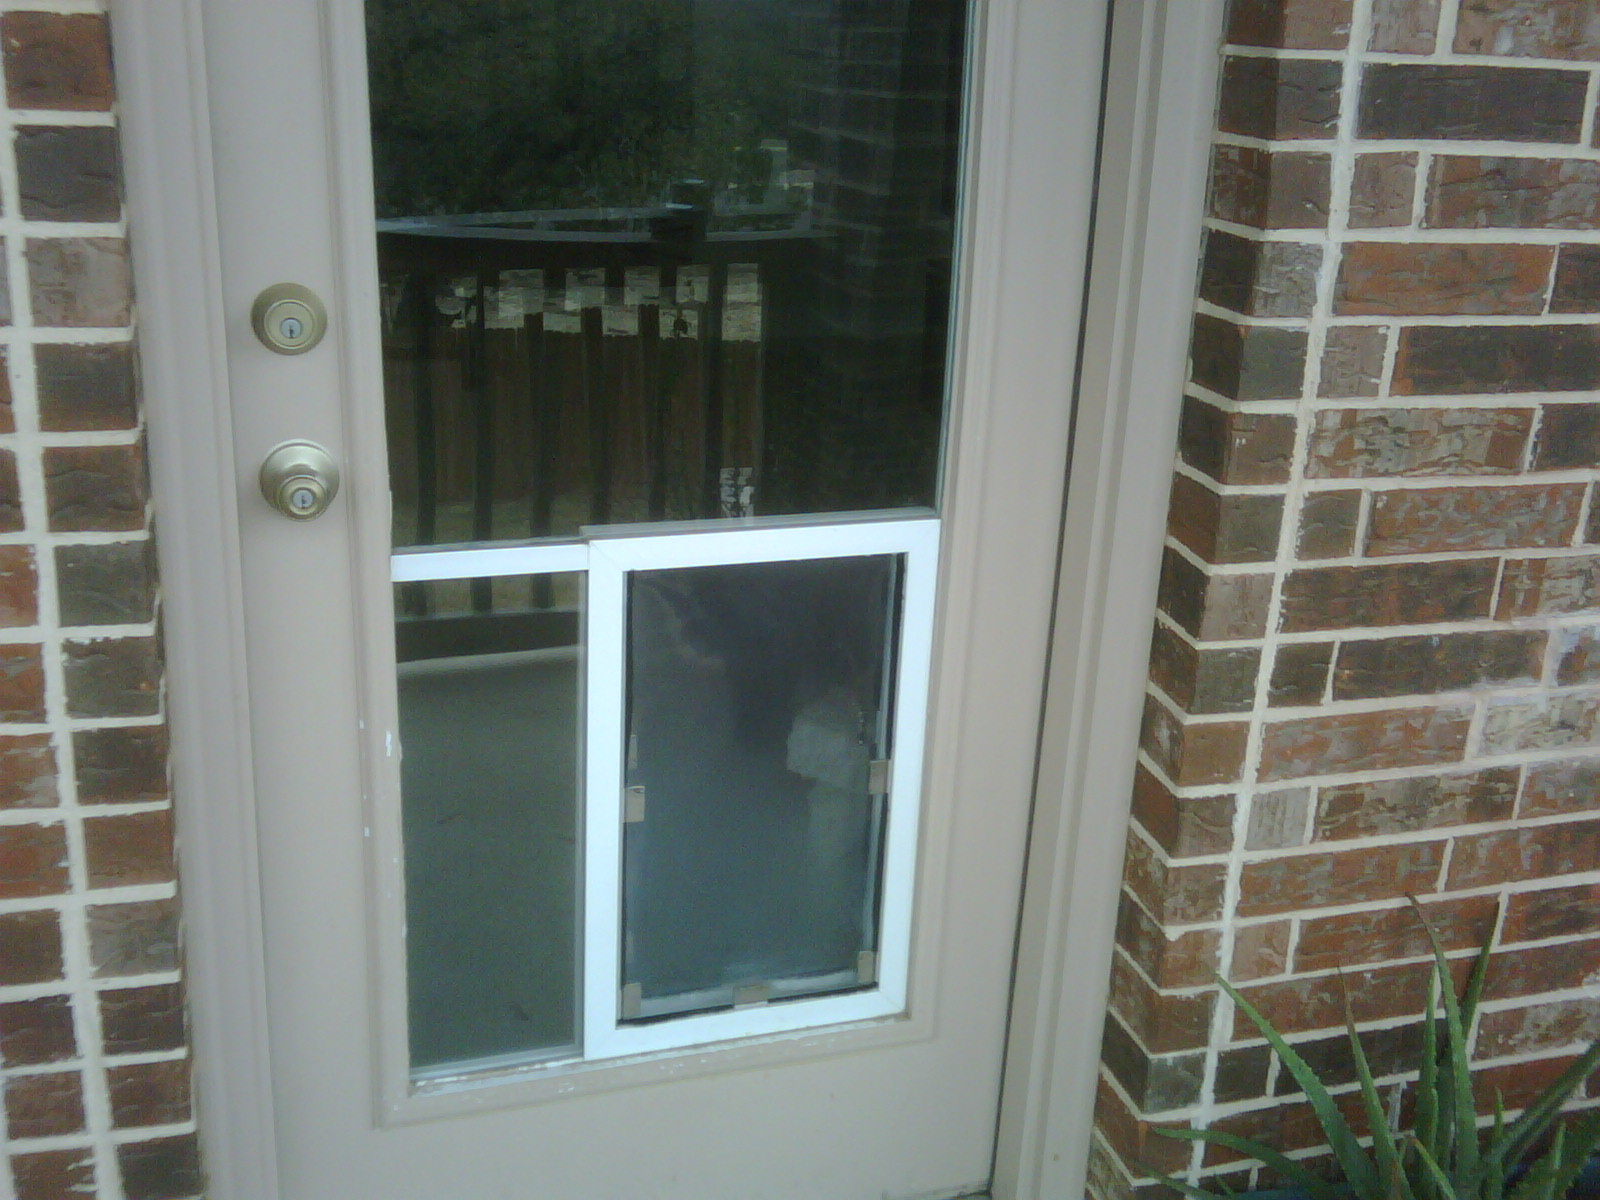 San antonio dog doors in glass installation gallery - Interior door with pet door installed ...